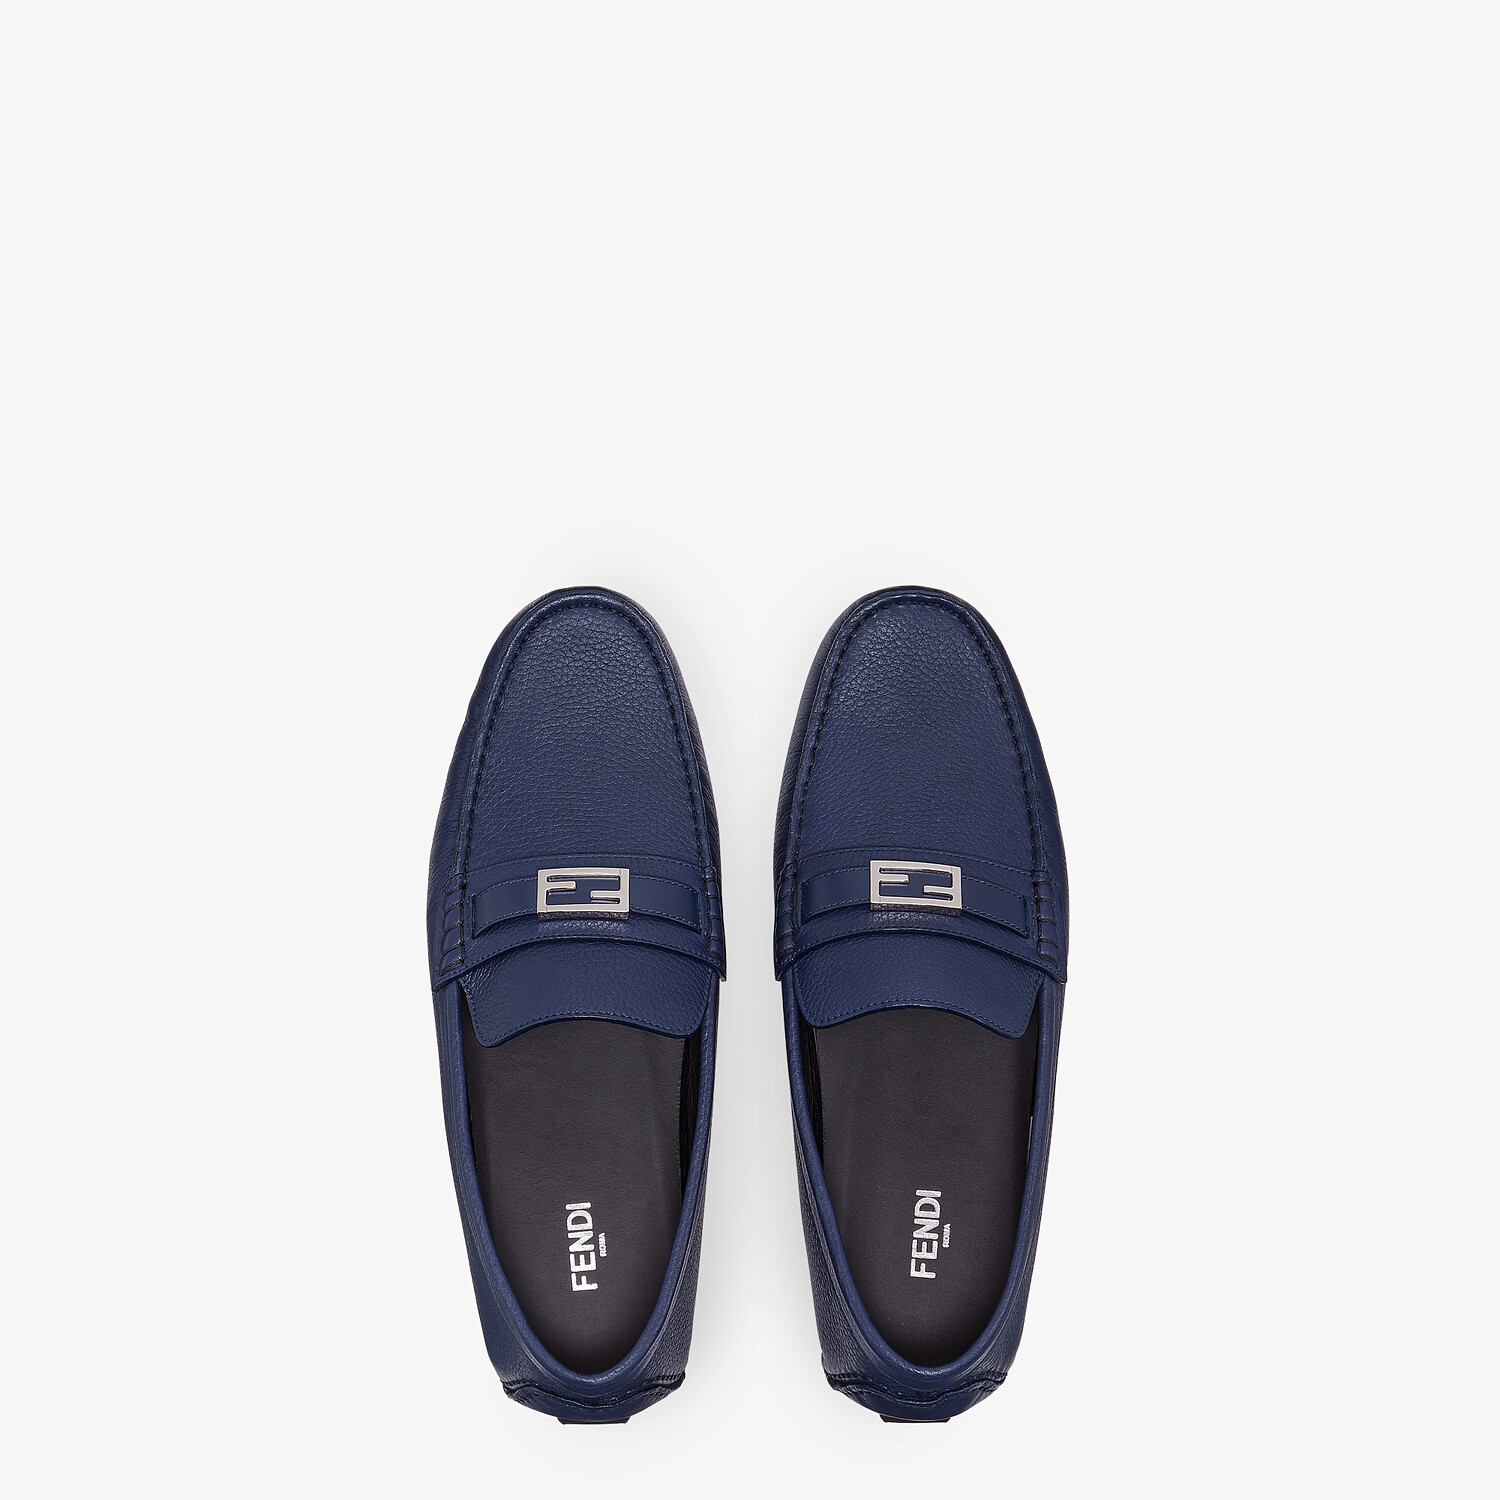 FENDI LOAFERS - Blue leather drivers - view 4 detail